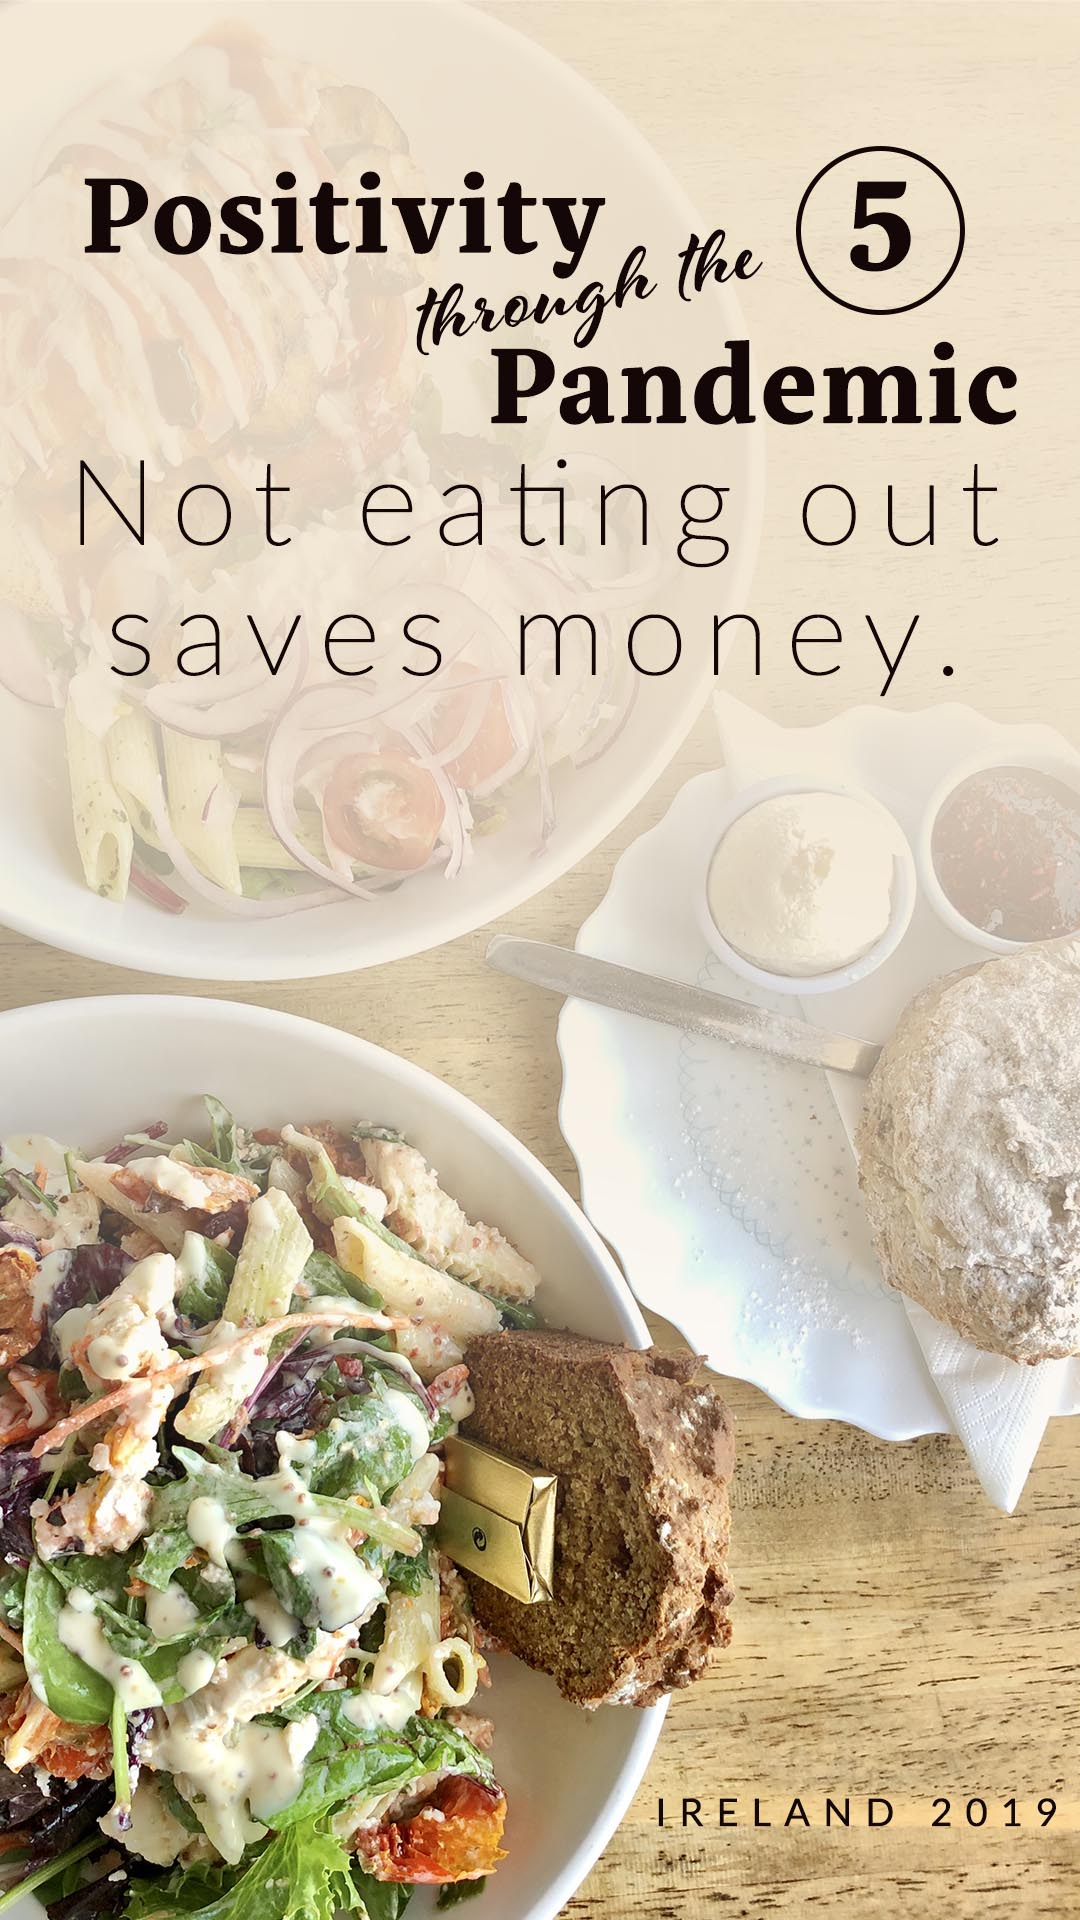 Positivity through the Pandemic #5: Not eating out saves money